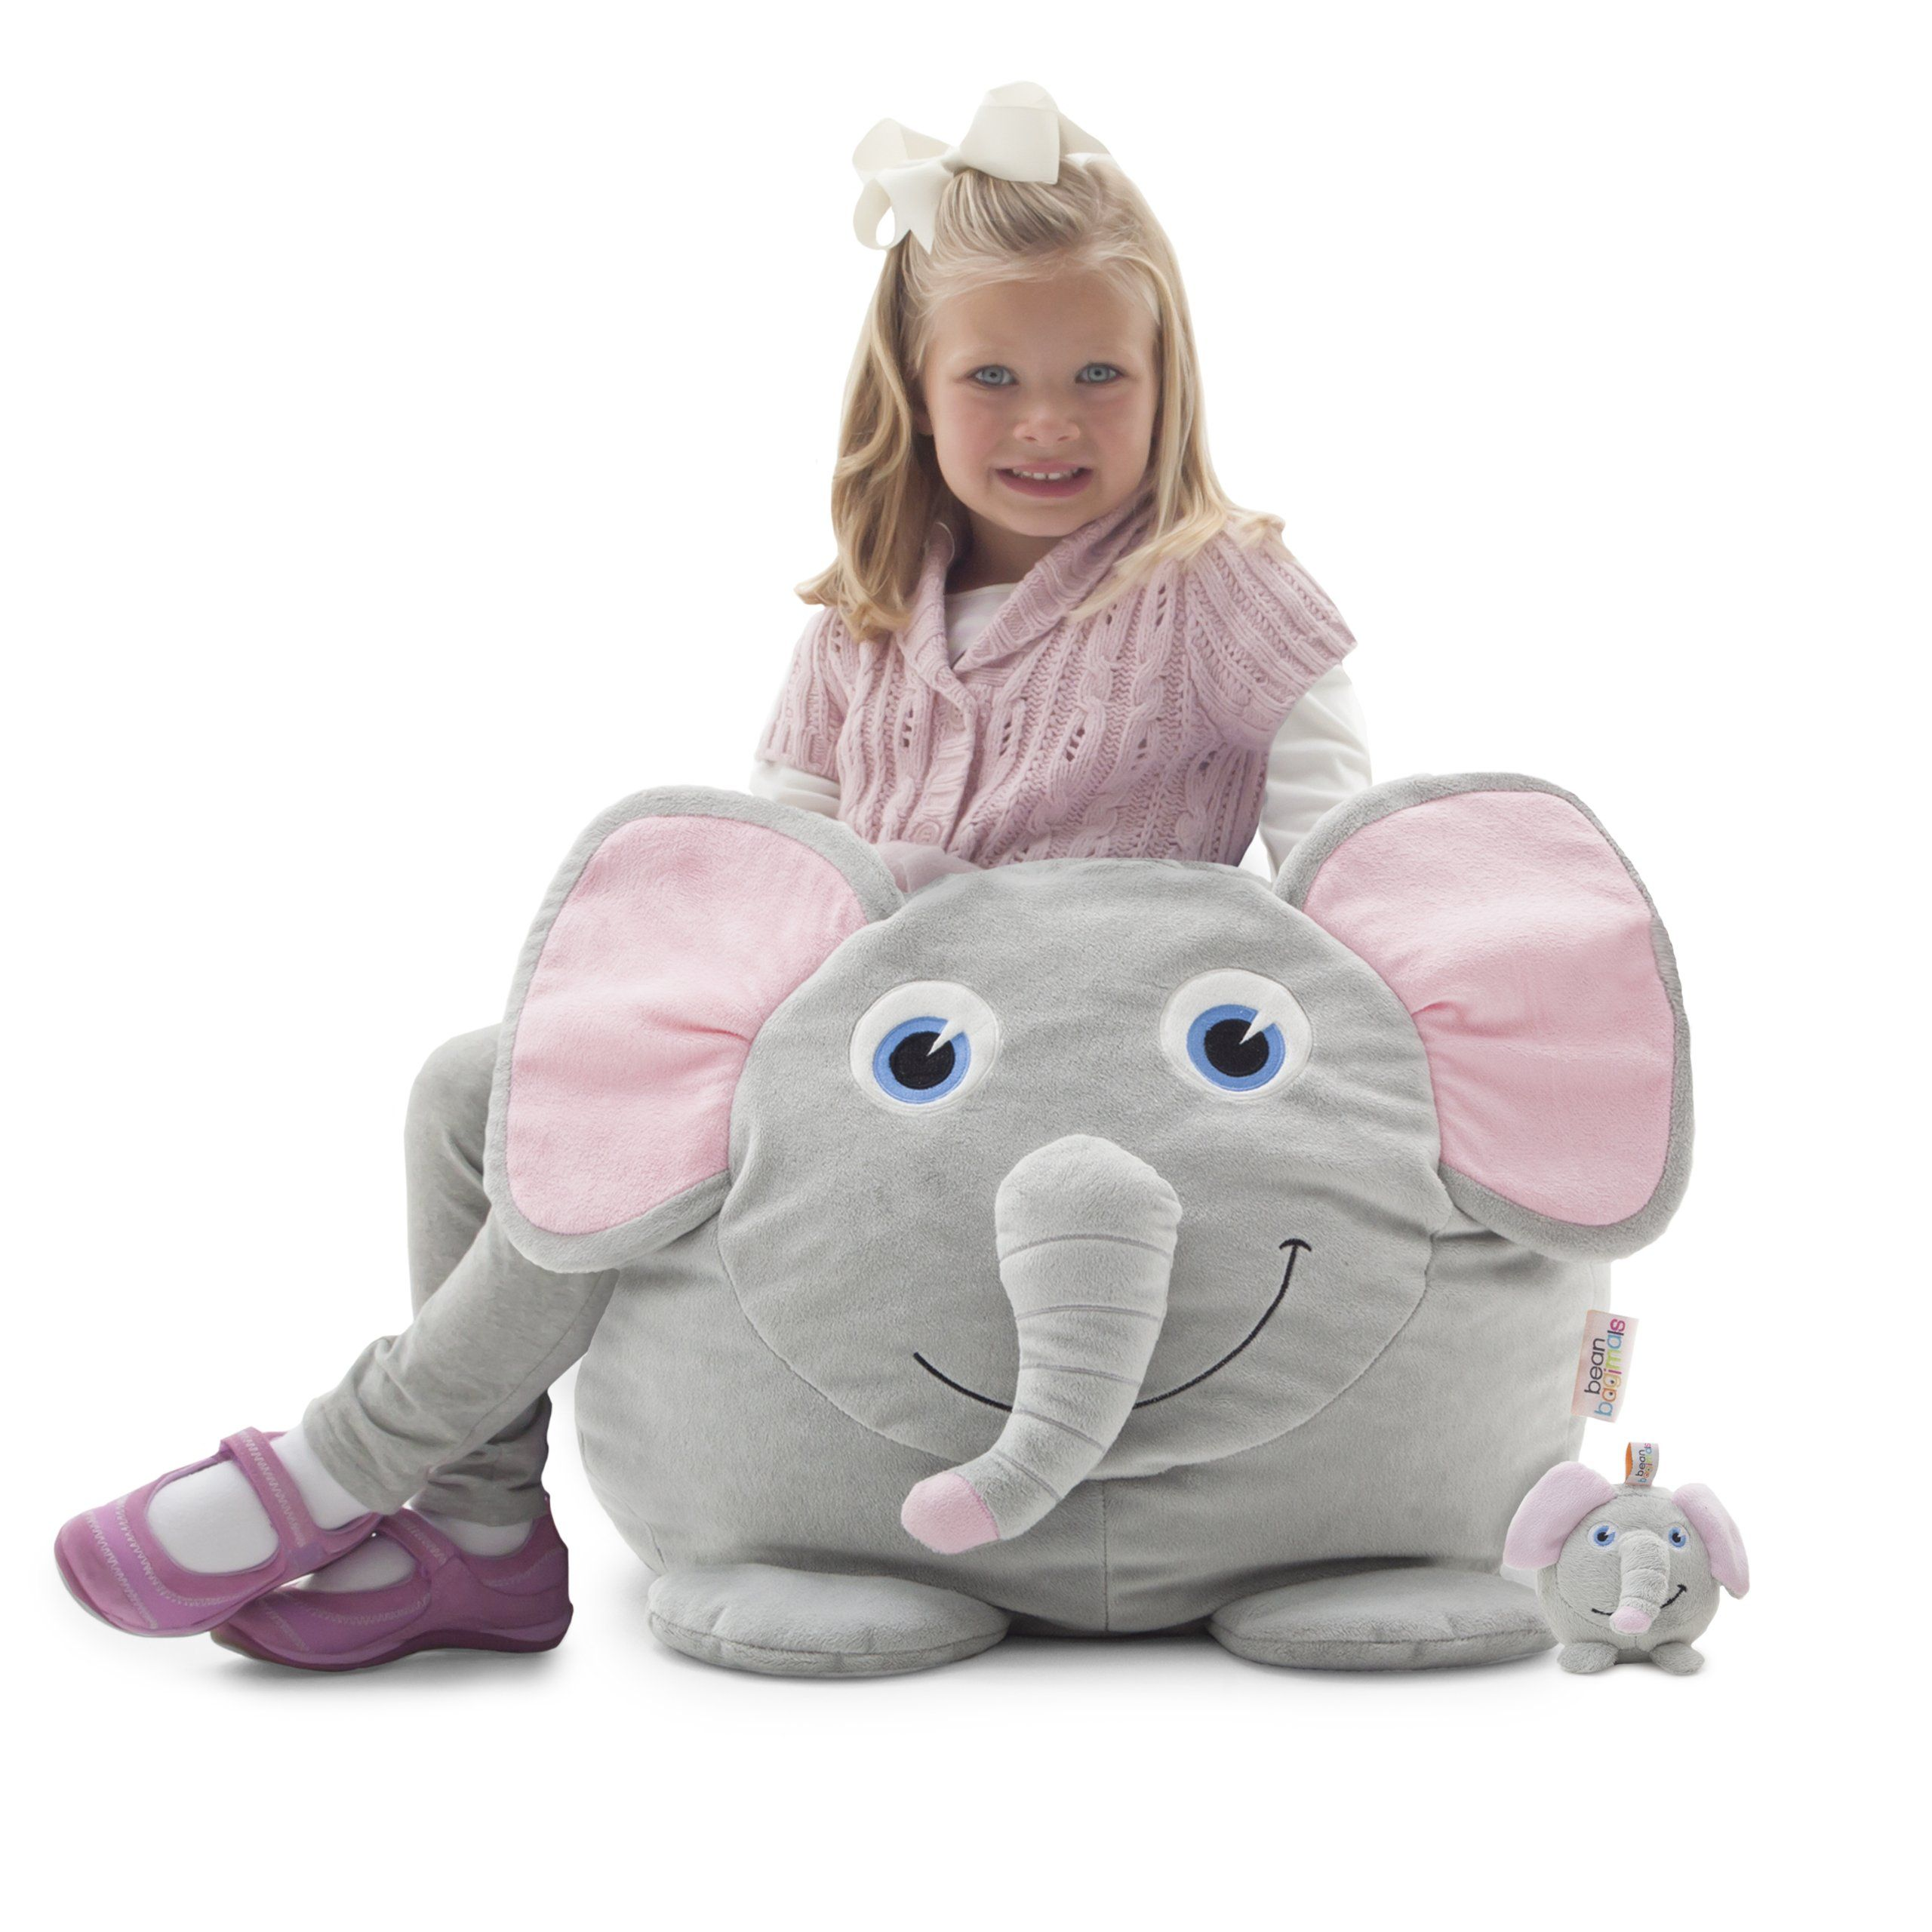 Comfort Research Bagimal Bean Bag Chair Emerson The Elephant  sc 1 st  Pinterest & Comfort Research Bagimal Bean Bag Chair Emerson The Elephant ...